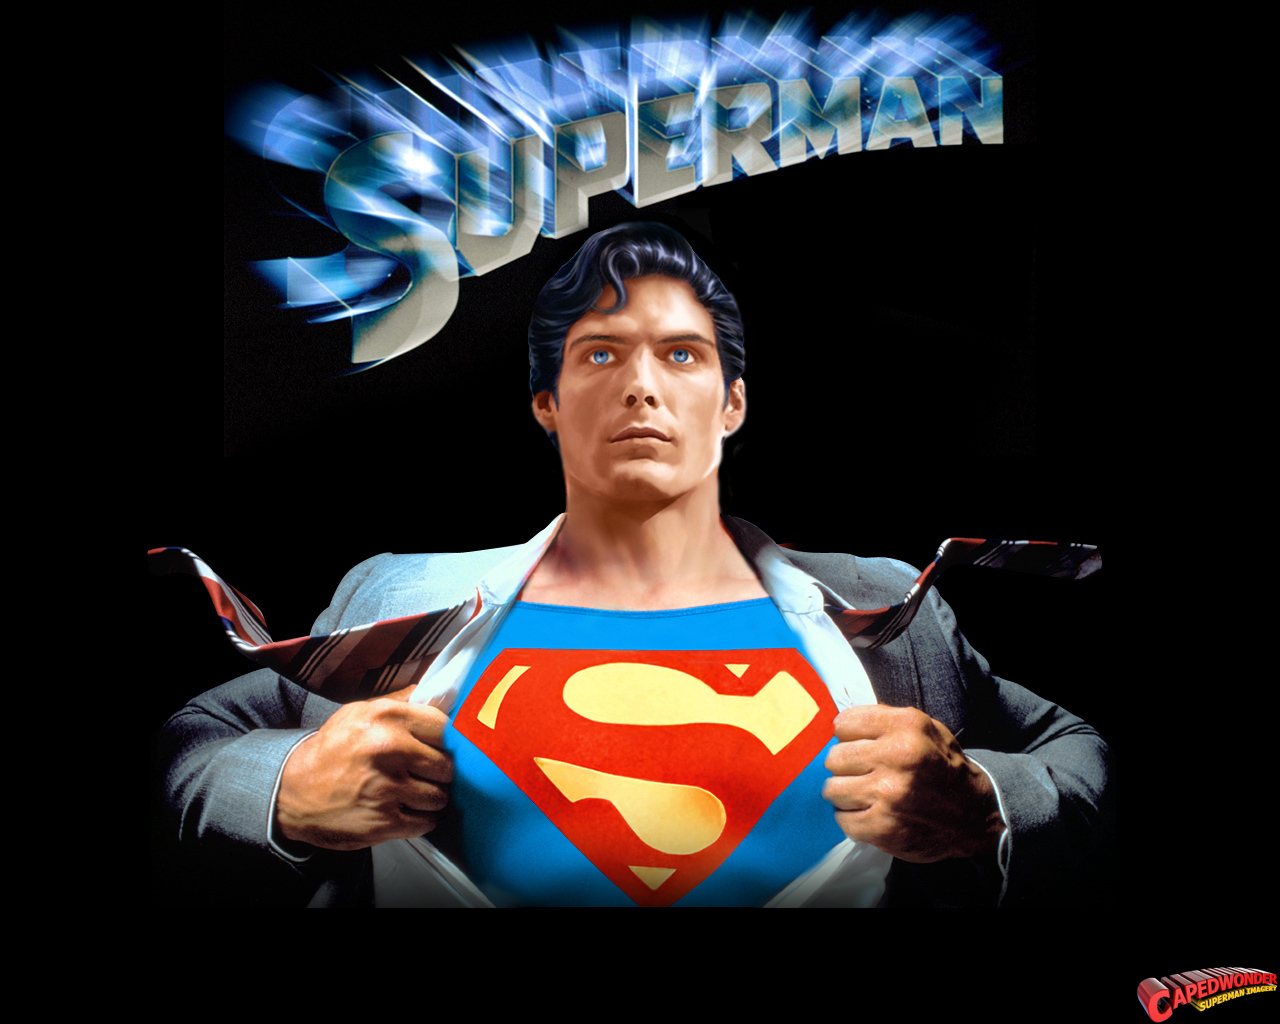 Superman The Movie images Superman HD wallpaper and background 1280x1024